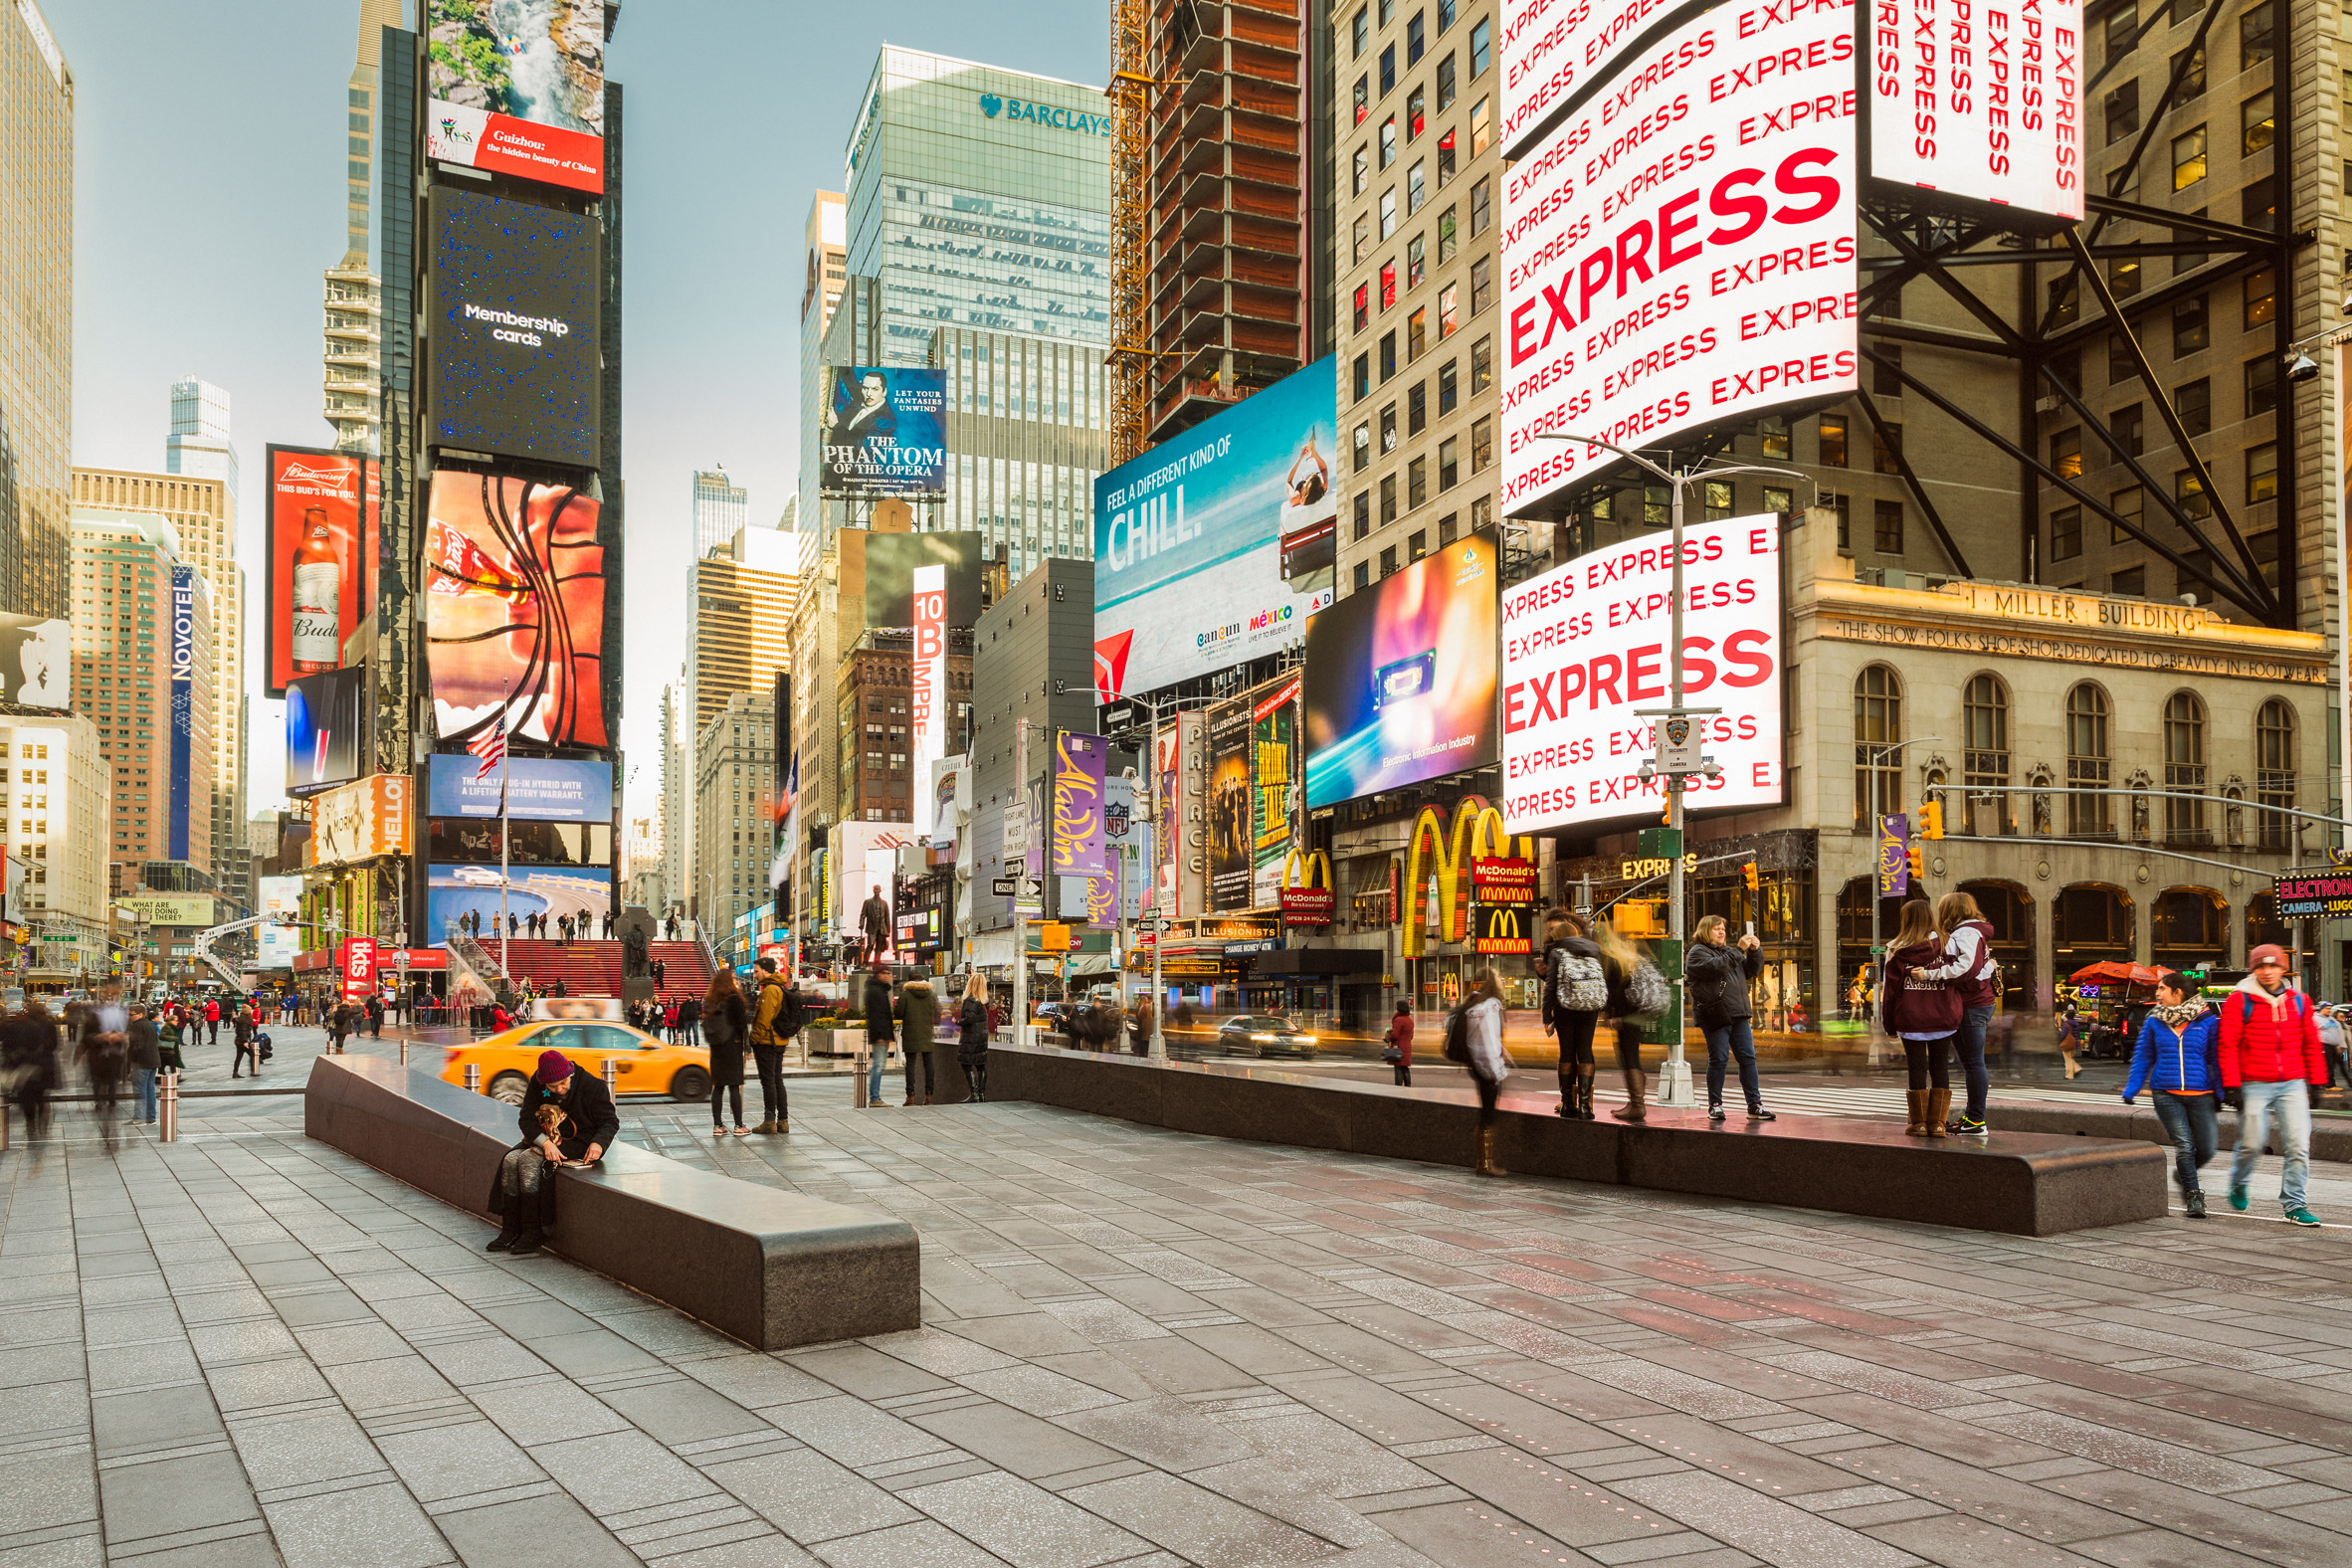 Snøhetta's Redisgn for New York's Times Square